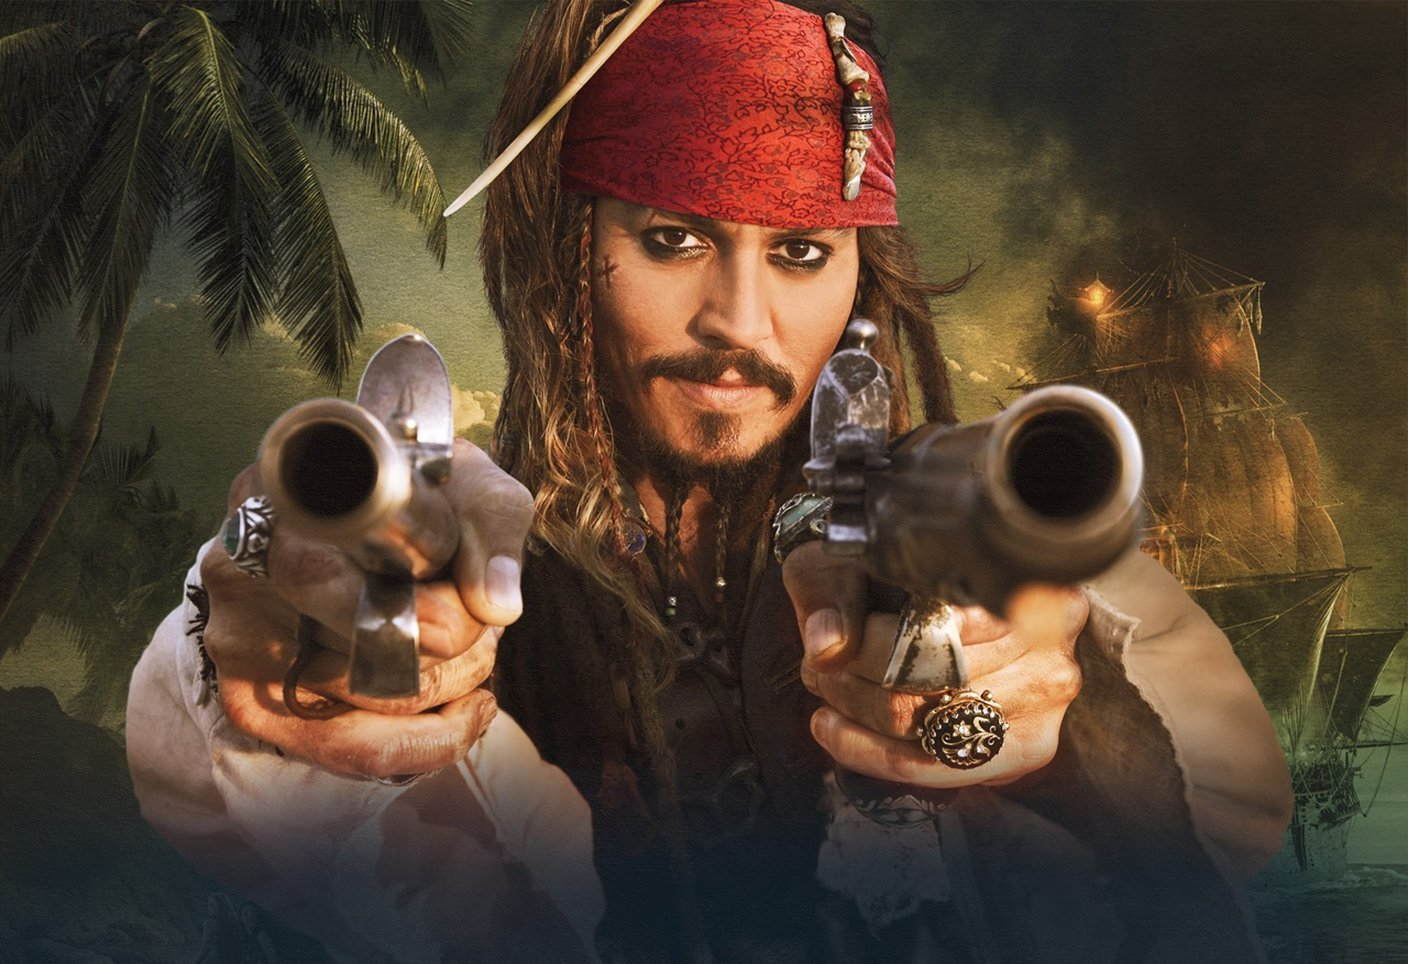 Pirates Of The Caribbean 5 Gets Screenwriter And Release Date